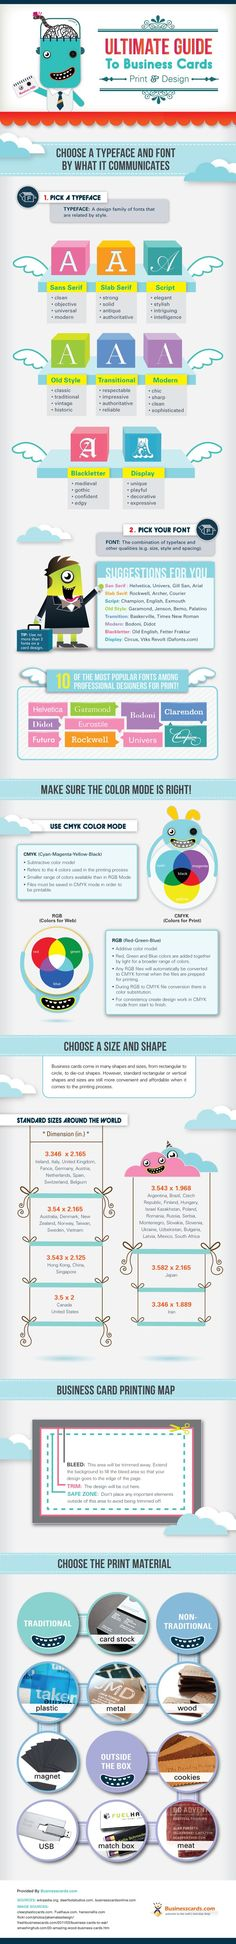 Design Guide for Business Cards